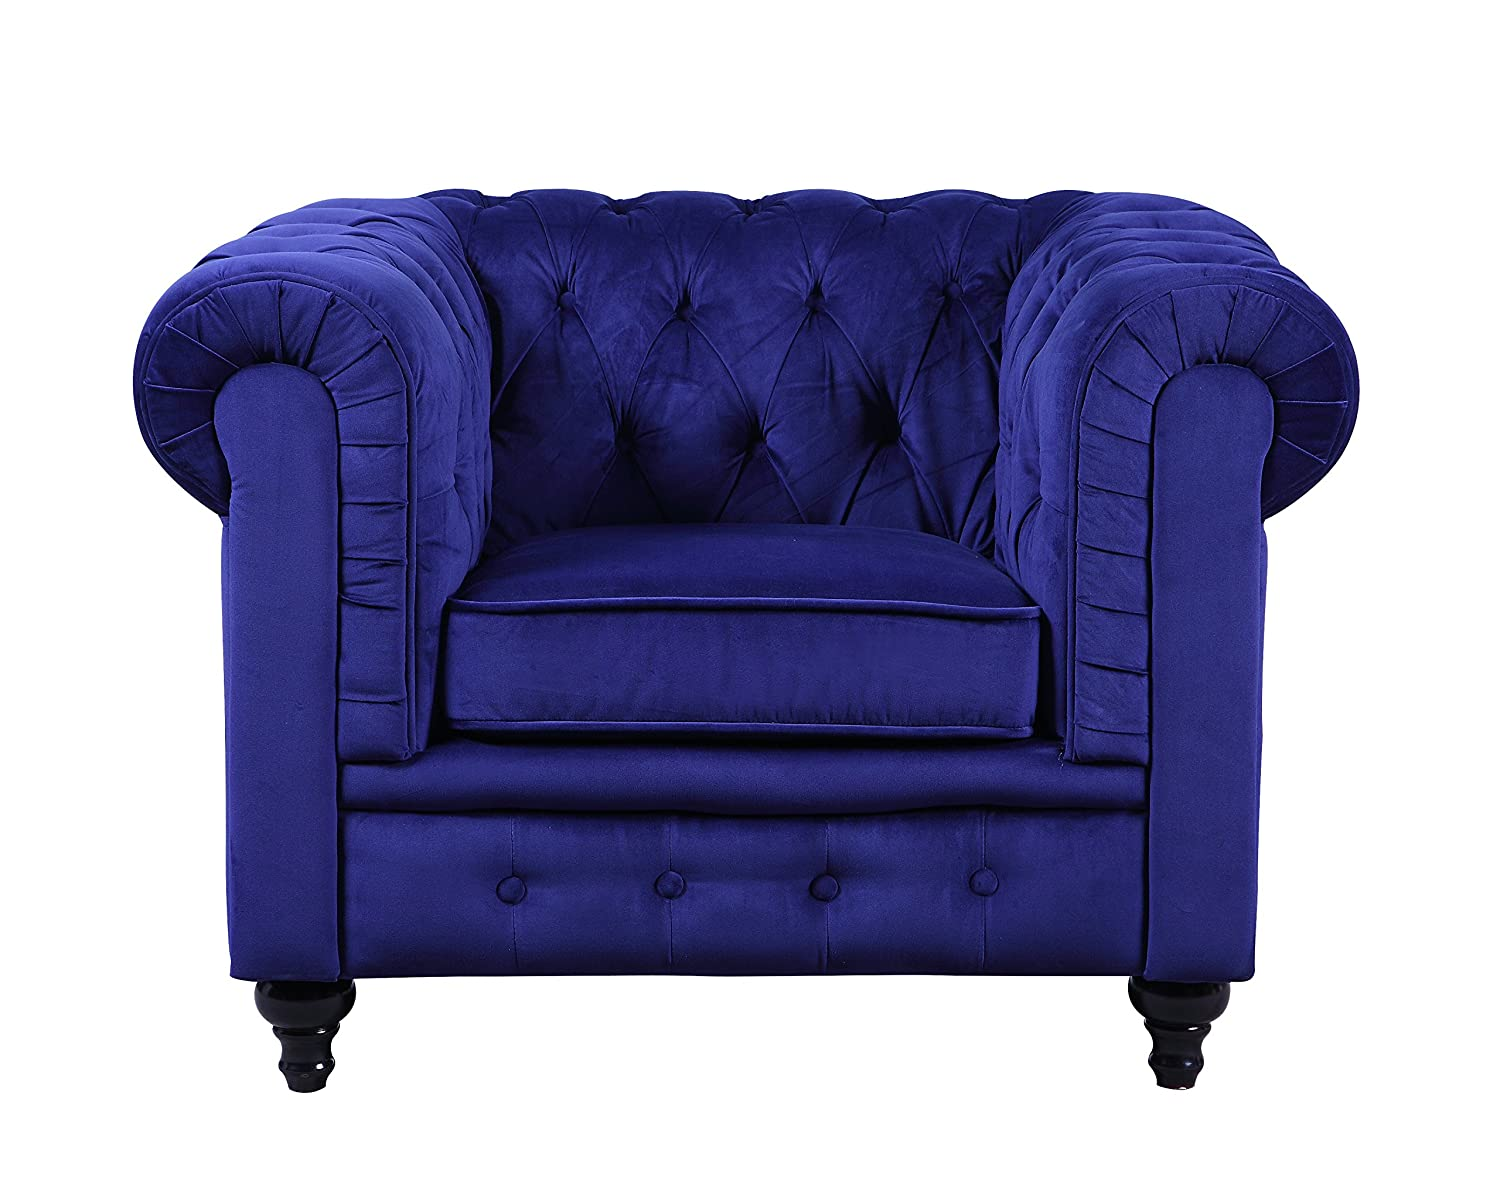 Elegant Amazon.com: Classic Scroll Arm Large Velvet Living Room Accent Chair (Navy  Blue): Kitchen U0026 Dining